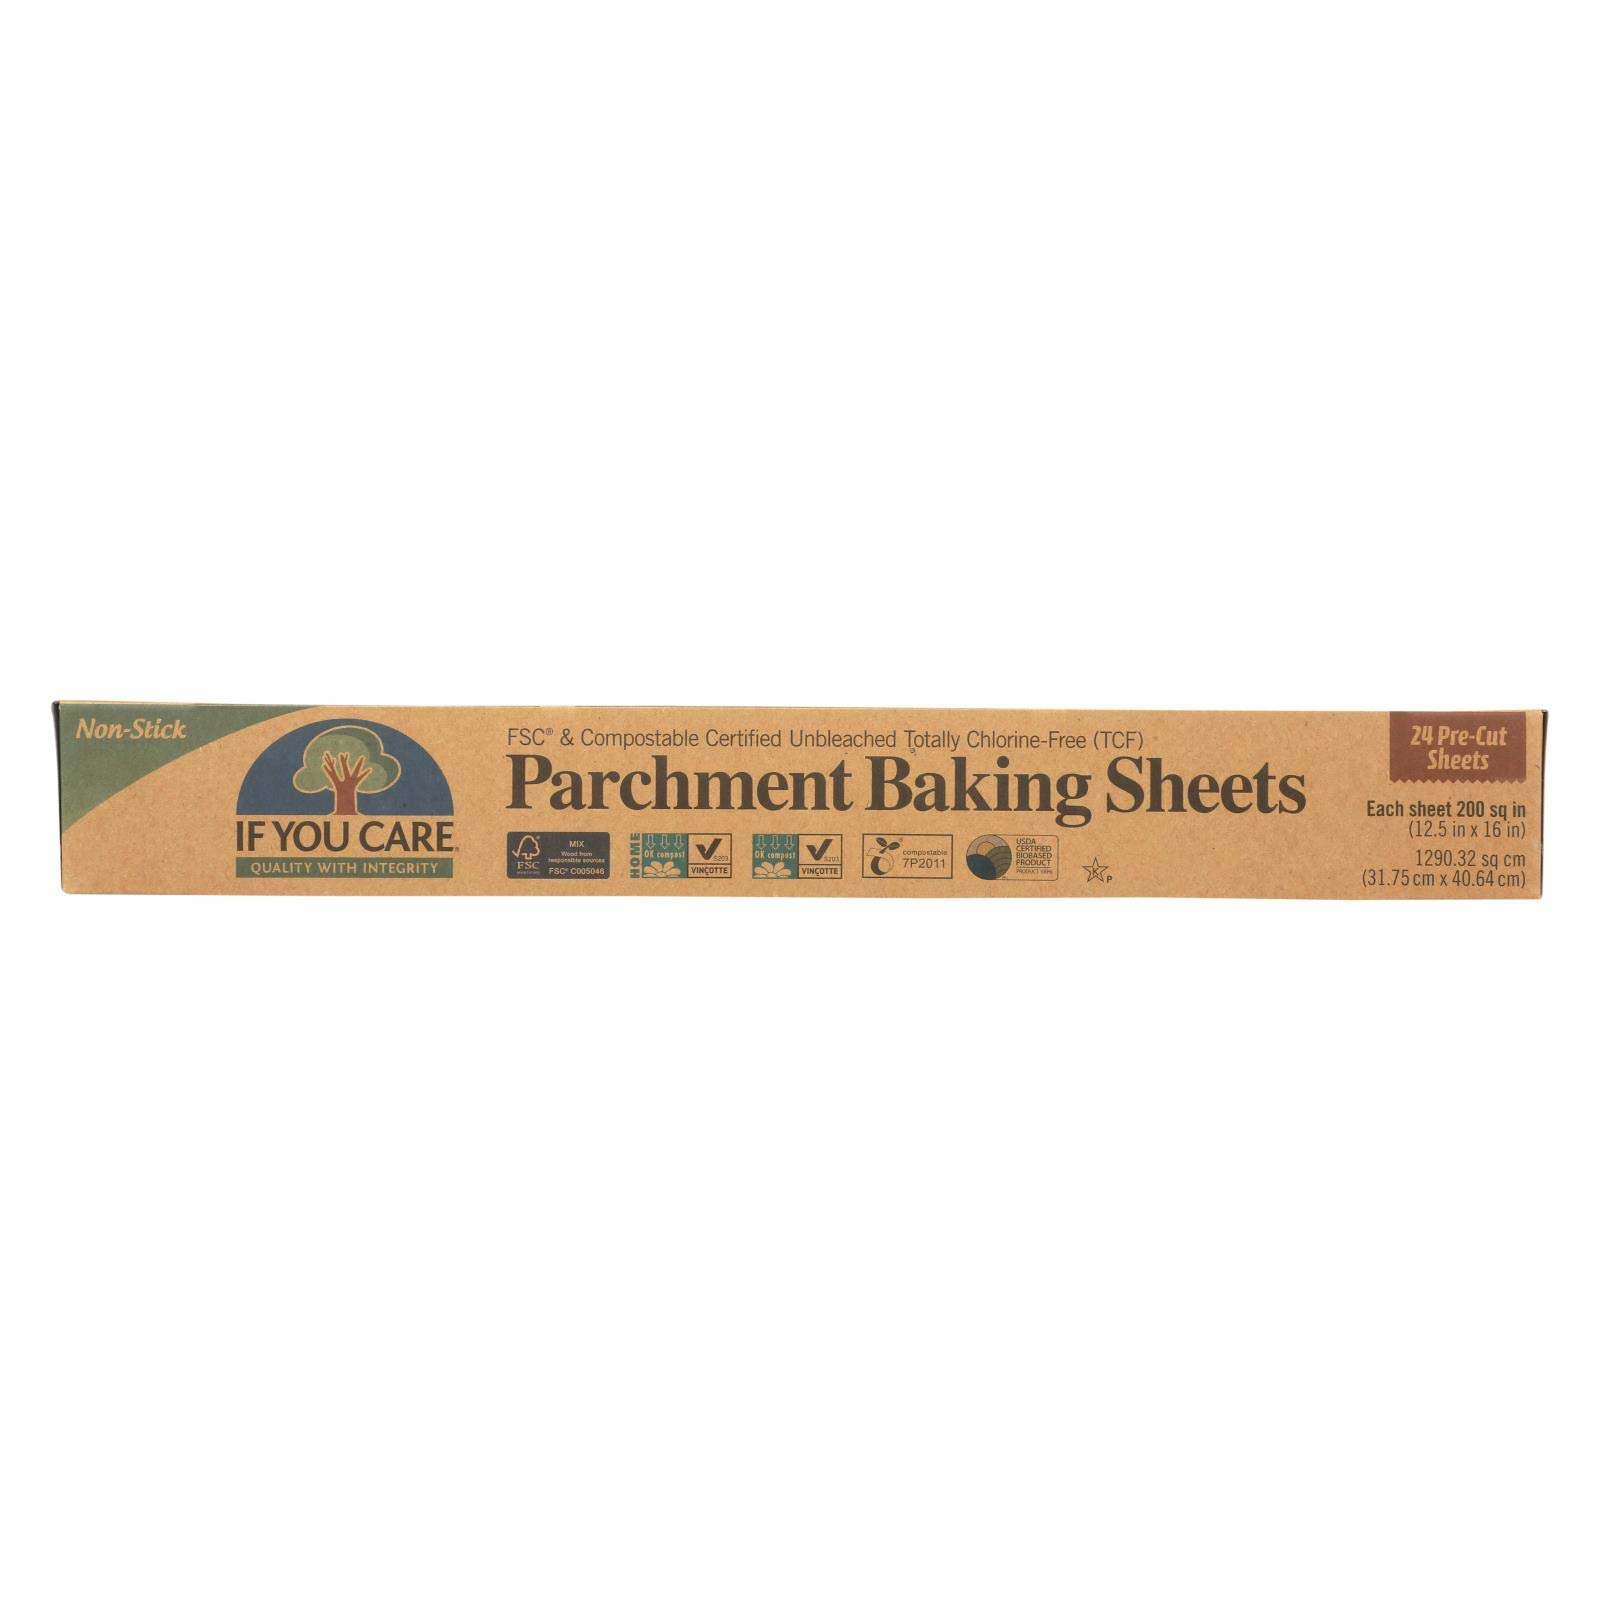 If You Care Parchment Baking Sheet - Paper - Case of 12 - 24 Count by If You Care